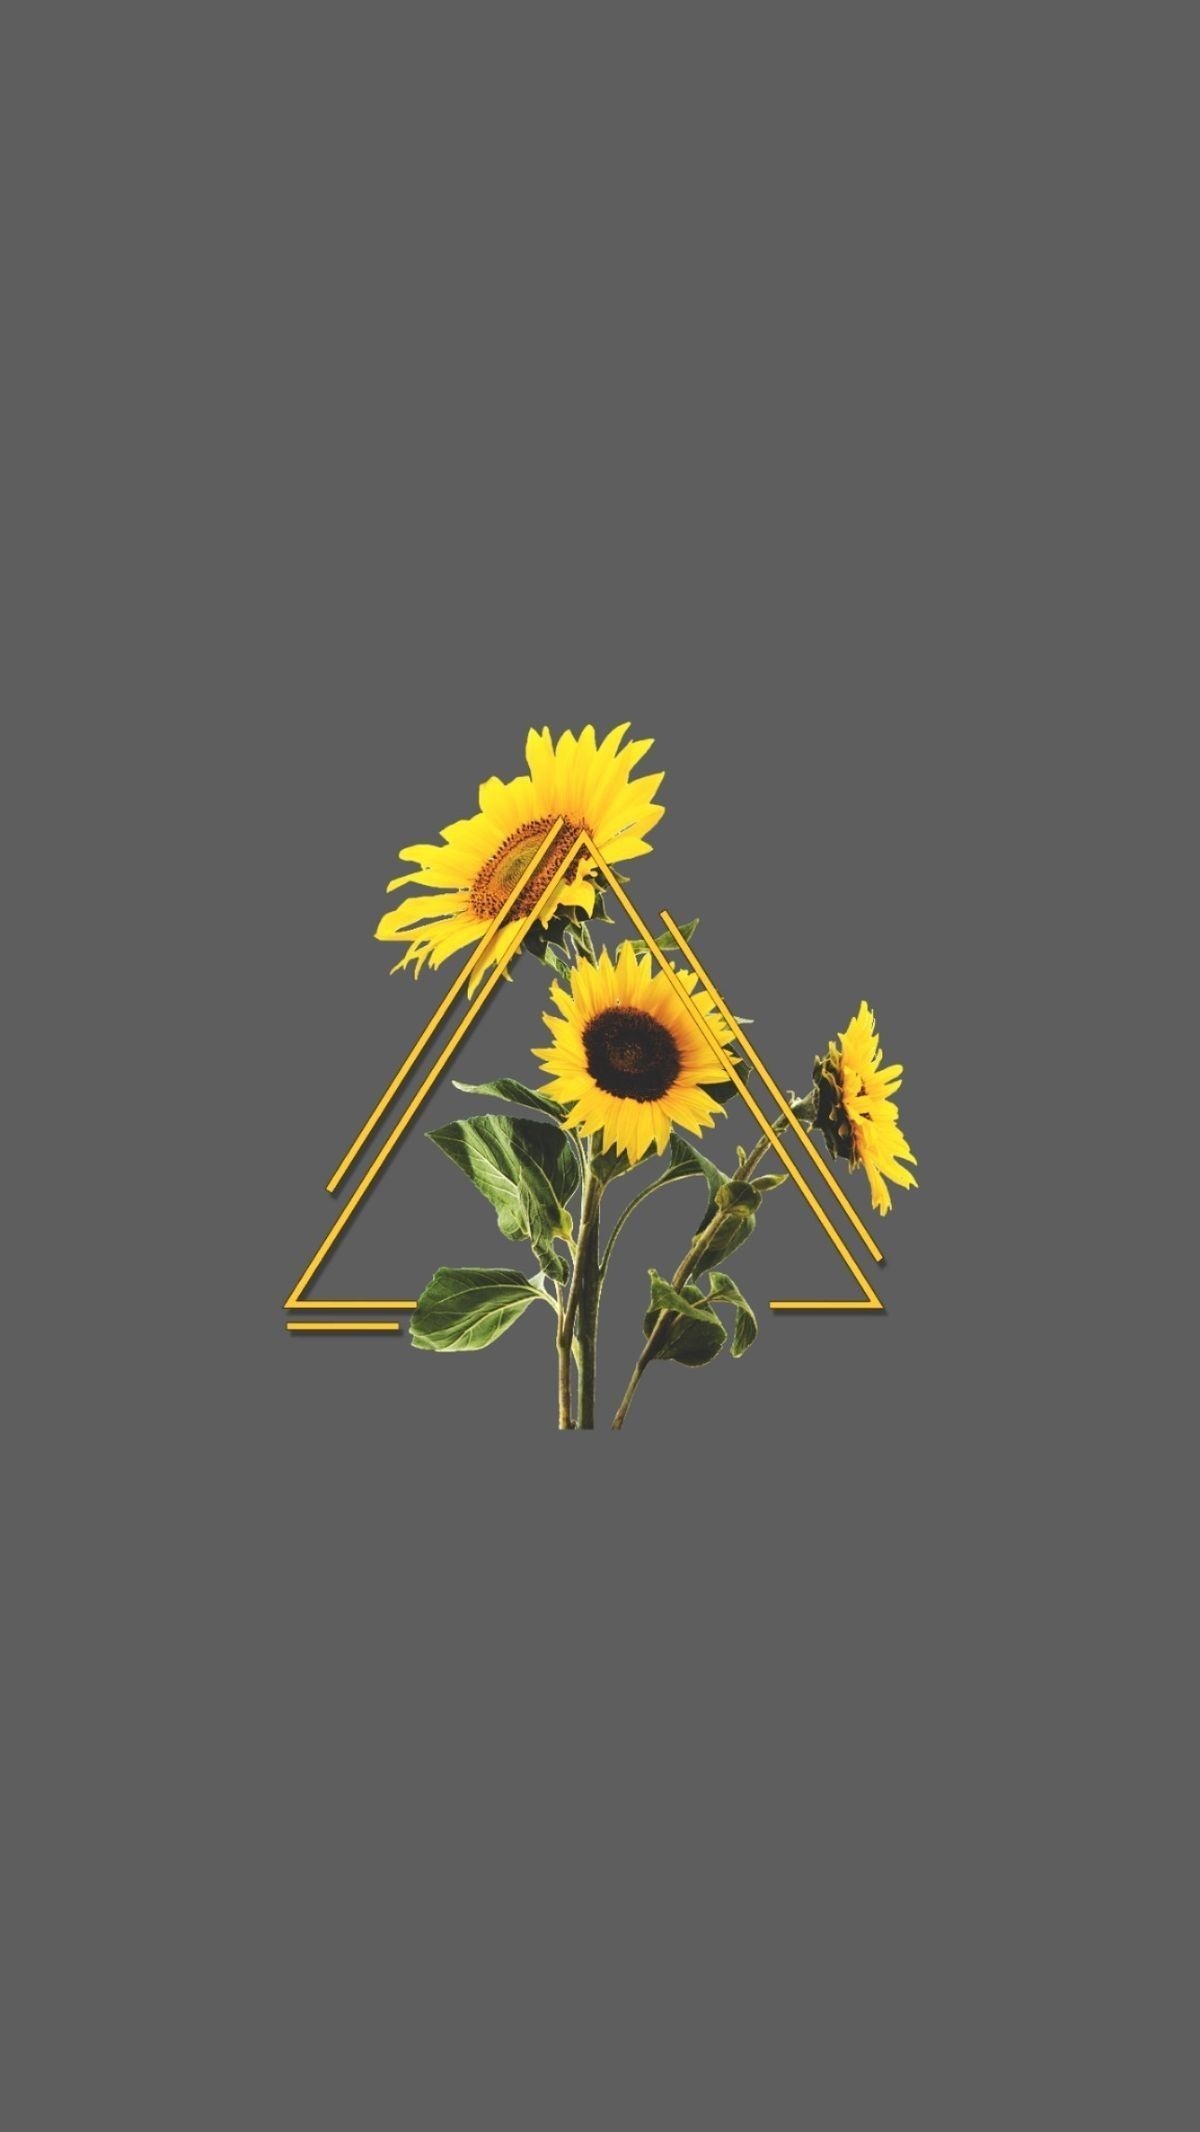 Sunflower Aesthetic Wallpapers Top Free Sunflower